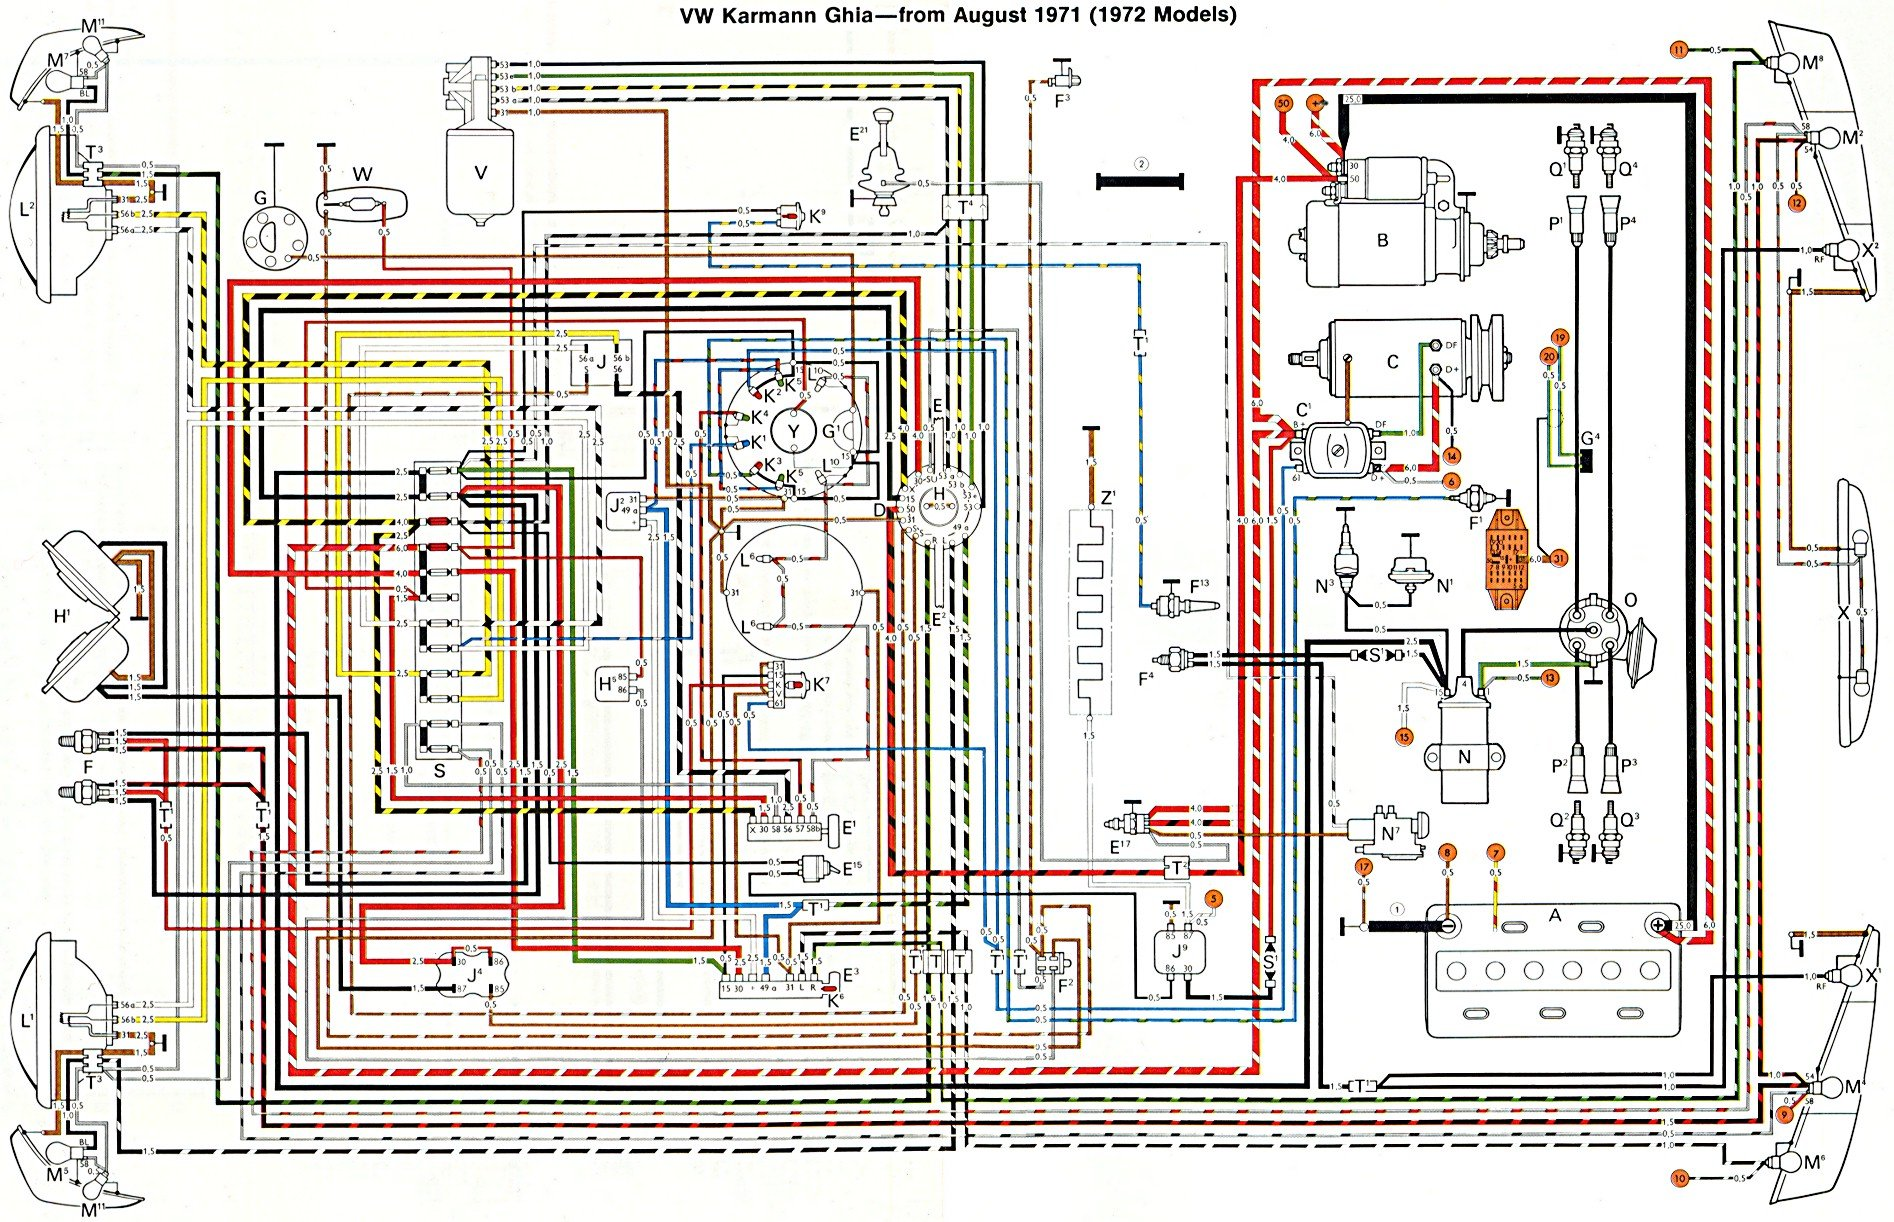 72ghia thesamba com karmann ghia wiring diagrams porsche 356 wiring diagram at crackthecode.co